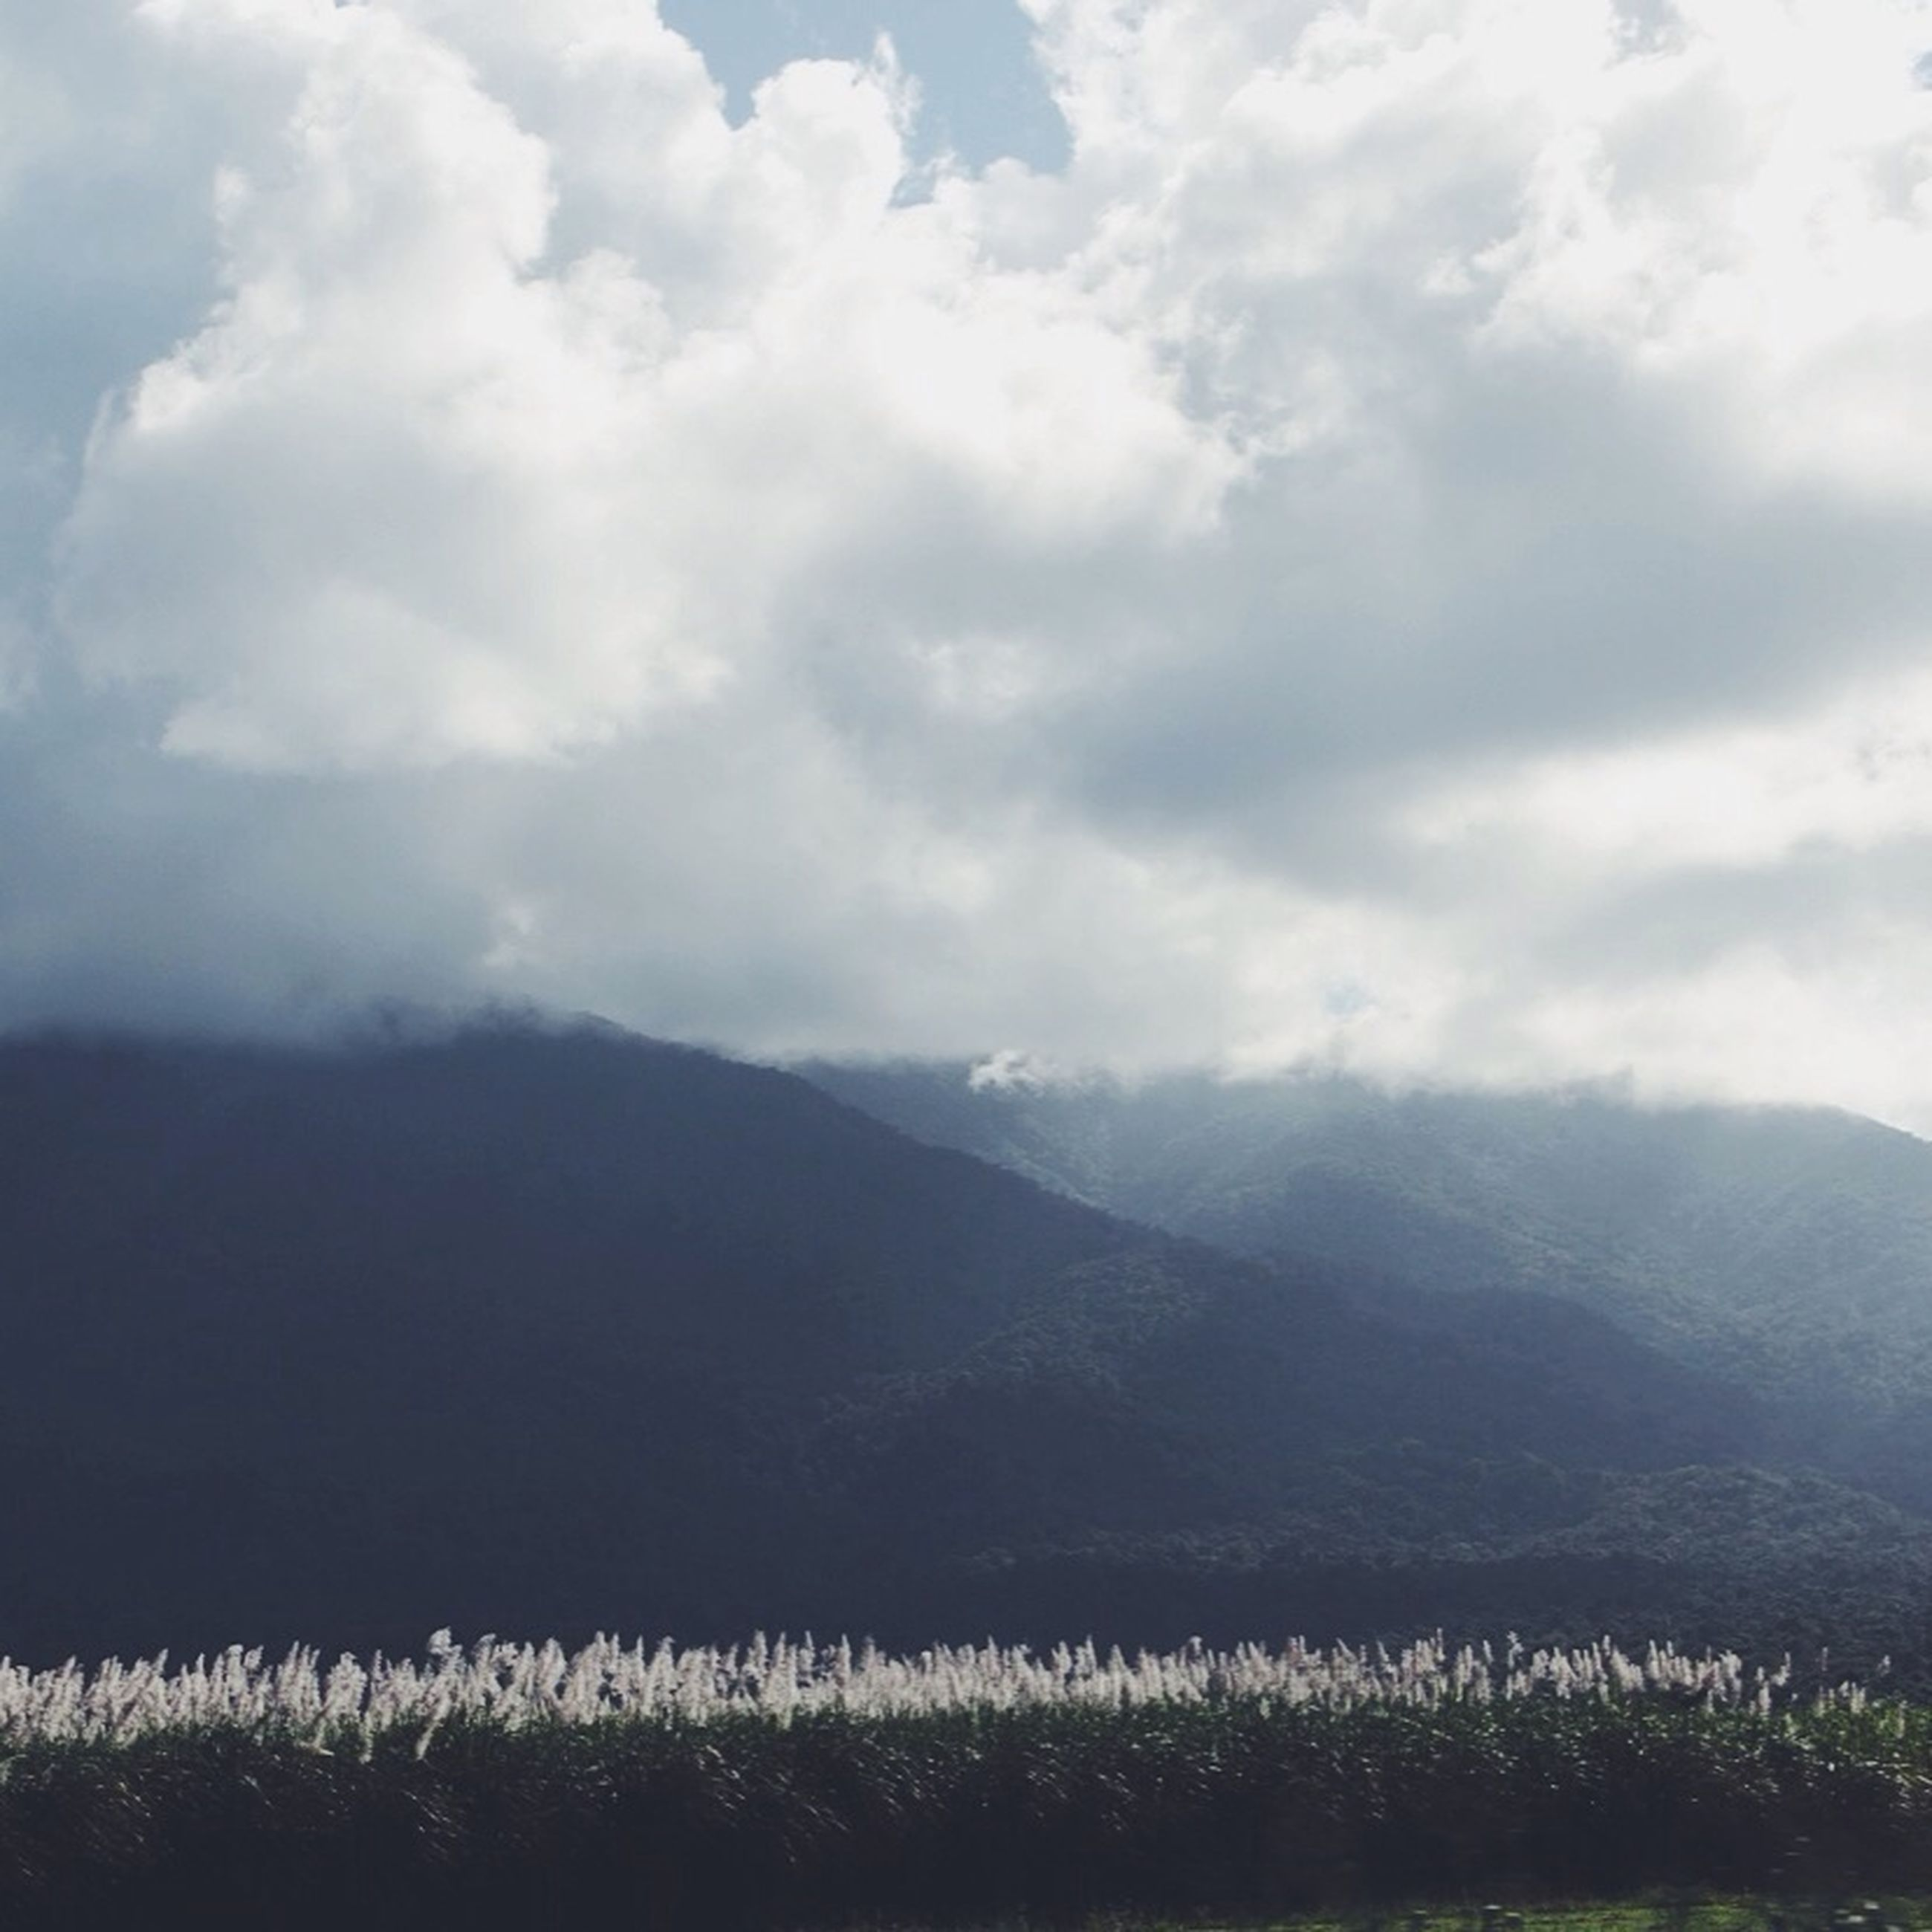 mountain, tranquil scene, sky, tranquility, landscape, scenics, beauty in nature, mountain range, cloud - sky, nature, cloud, cloudy, non-urban scene, idyllic, field, growth, remote, plant, horizon over land, outdoors